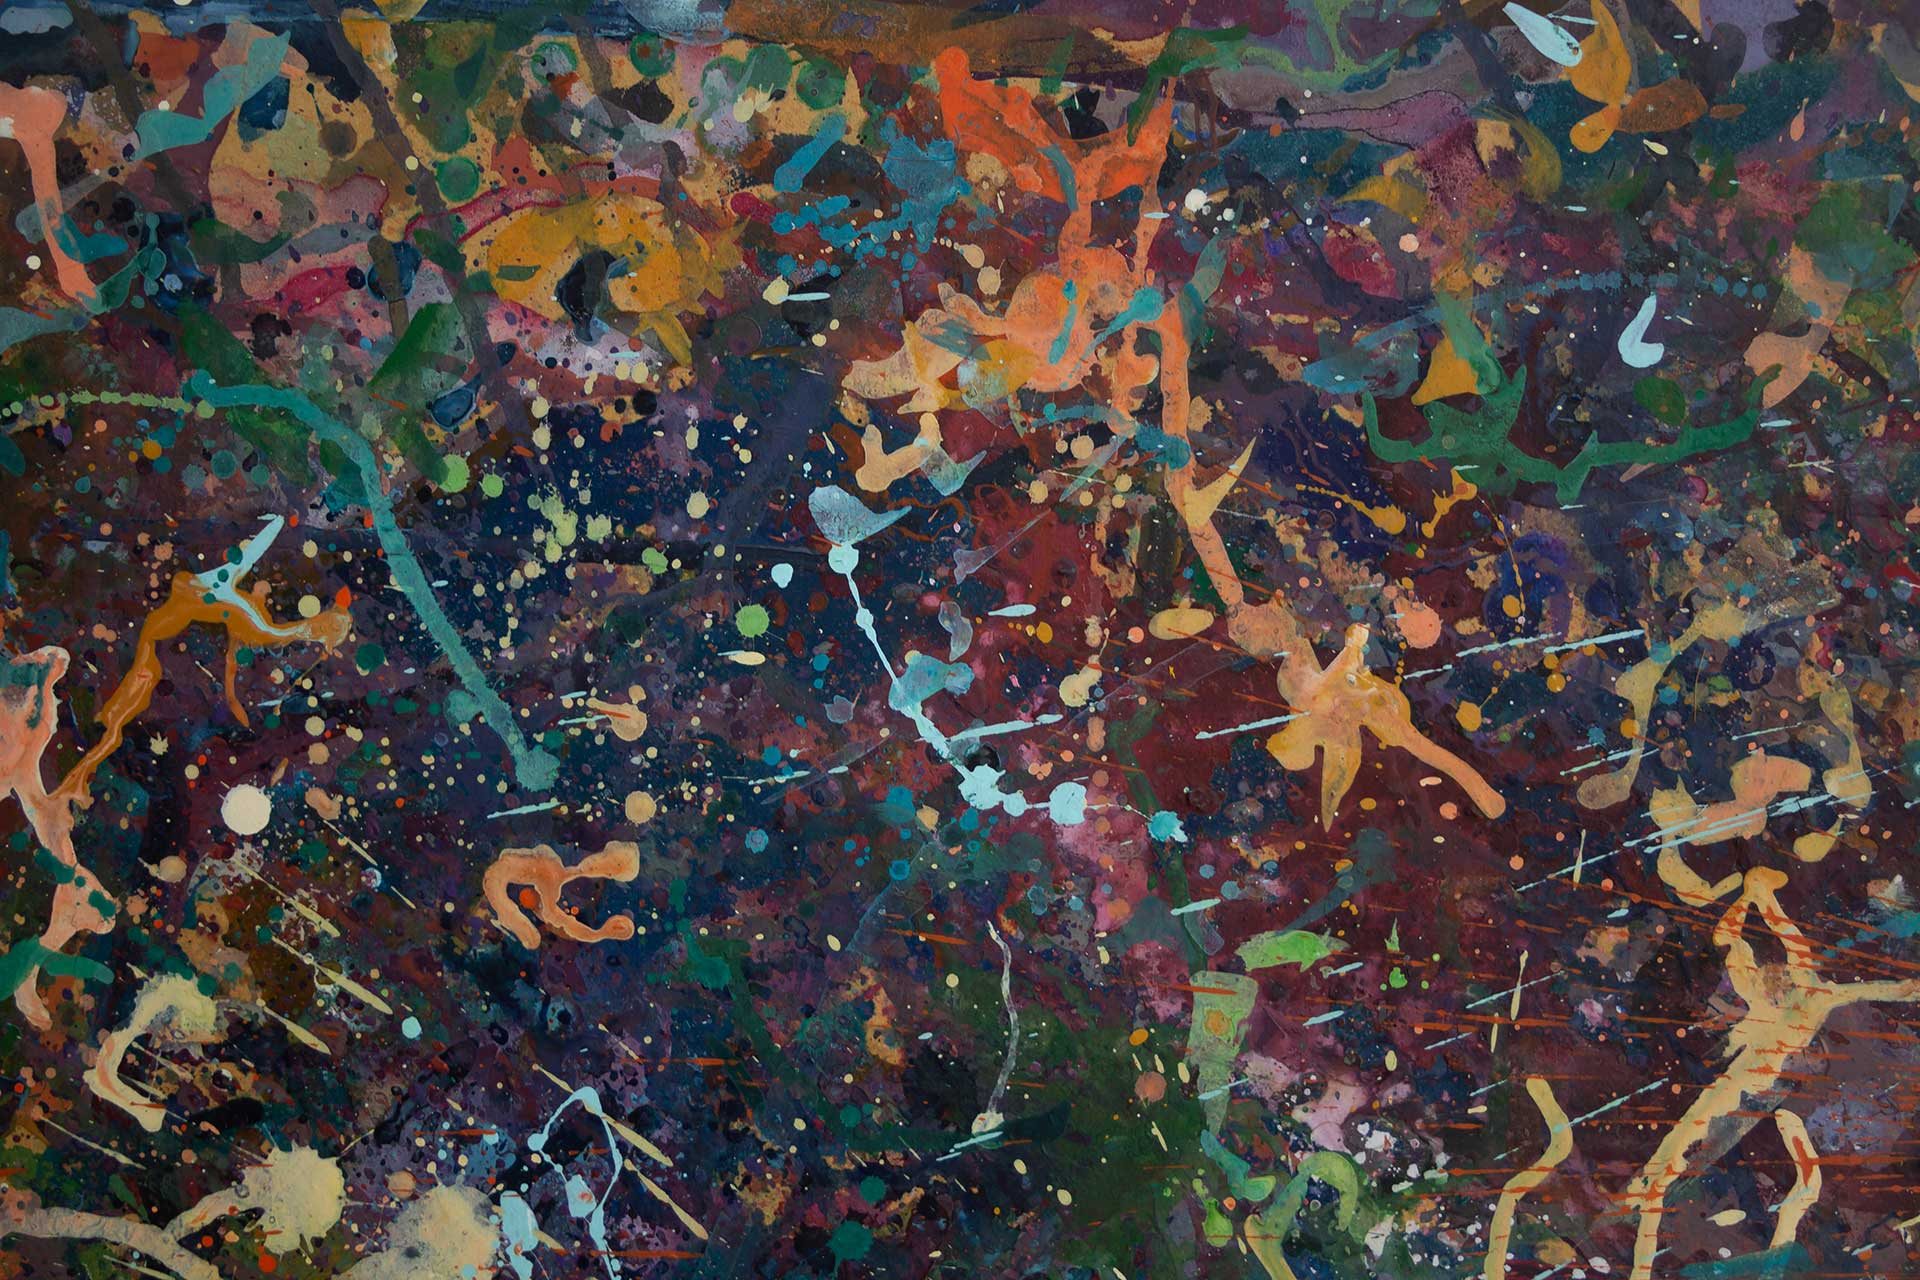 Abstract expressionism painting - Alien teddy bear dance party - Detail 1